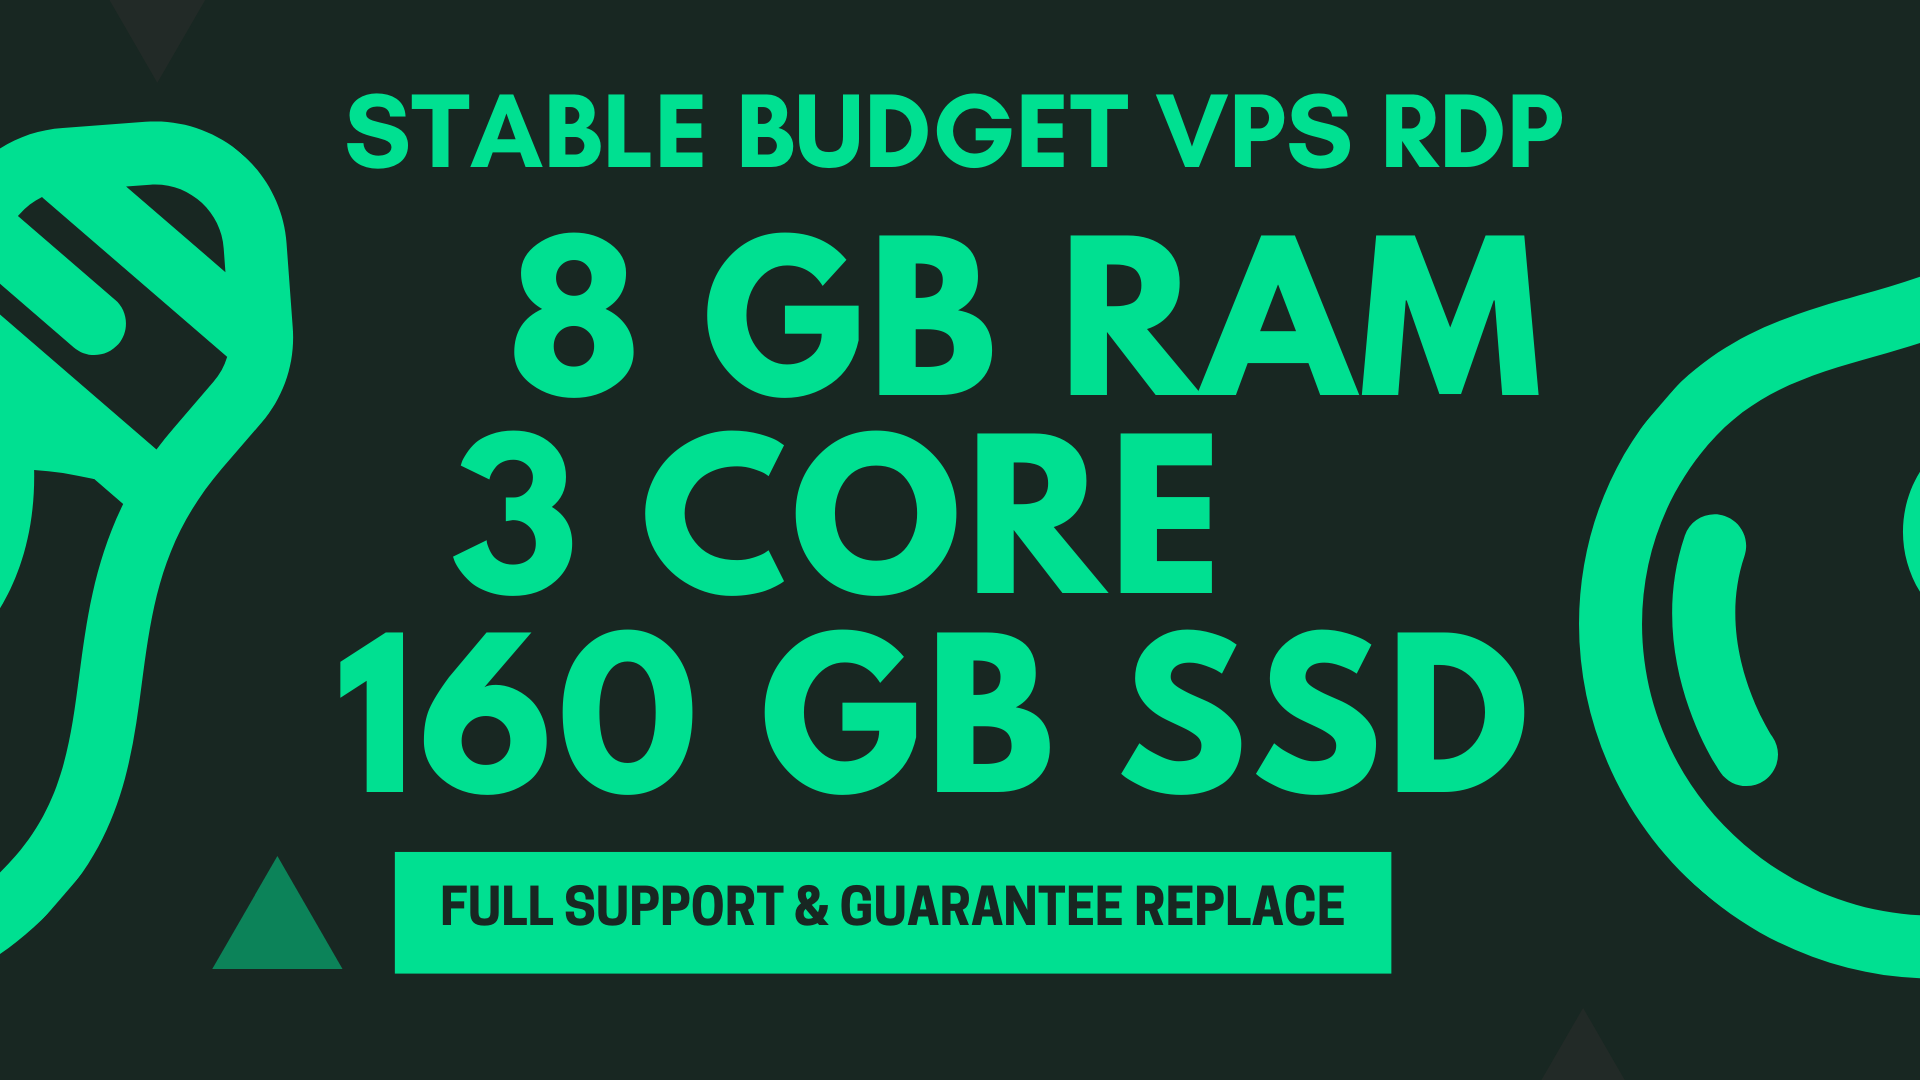 STABLE BUDGET WINDOWS RDP VPS 8GB RAM 3CORE 160GB SSD